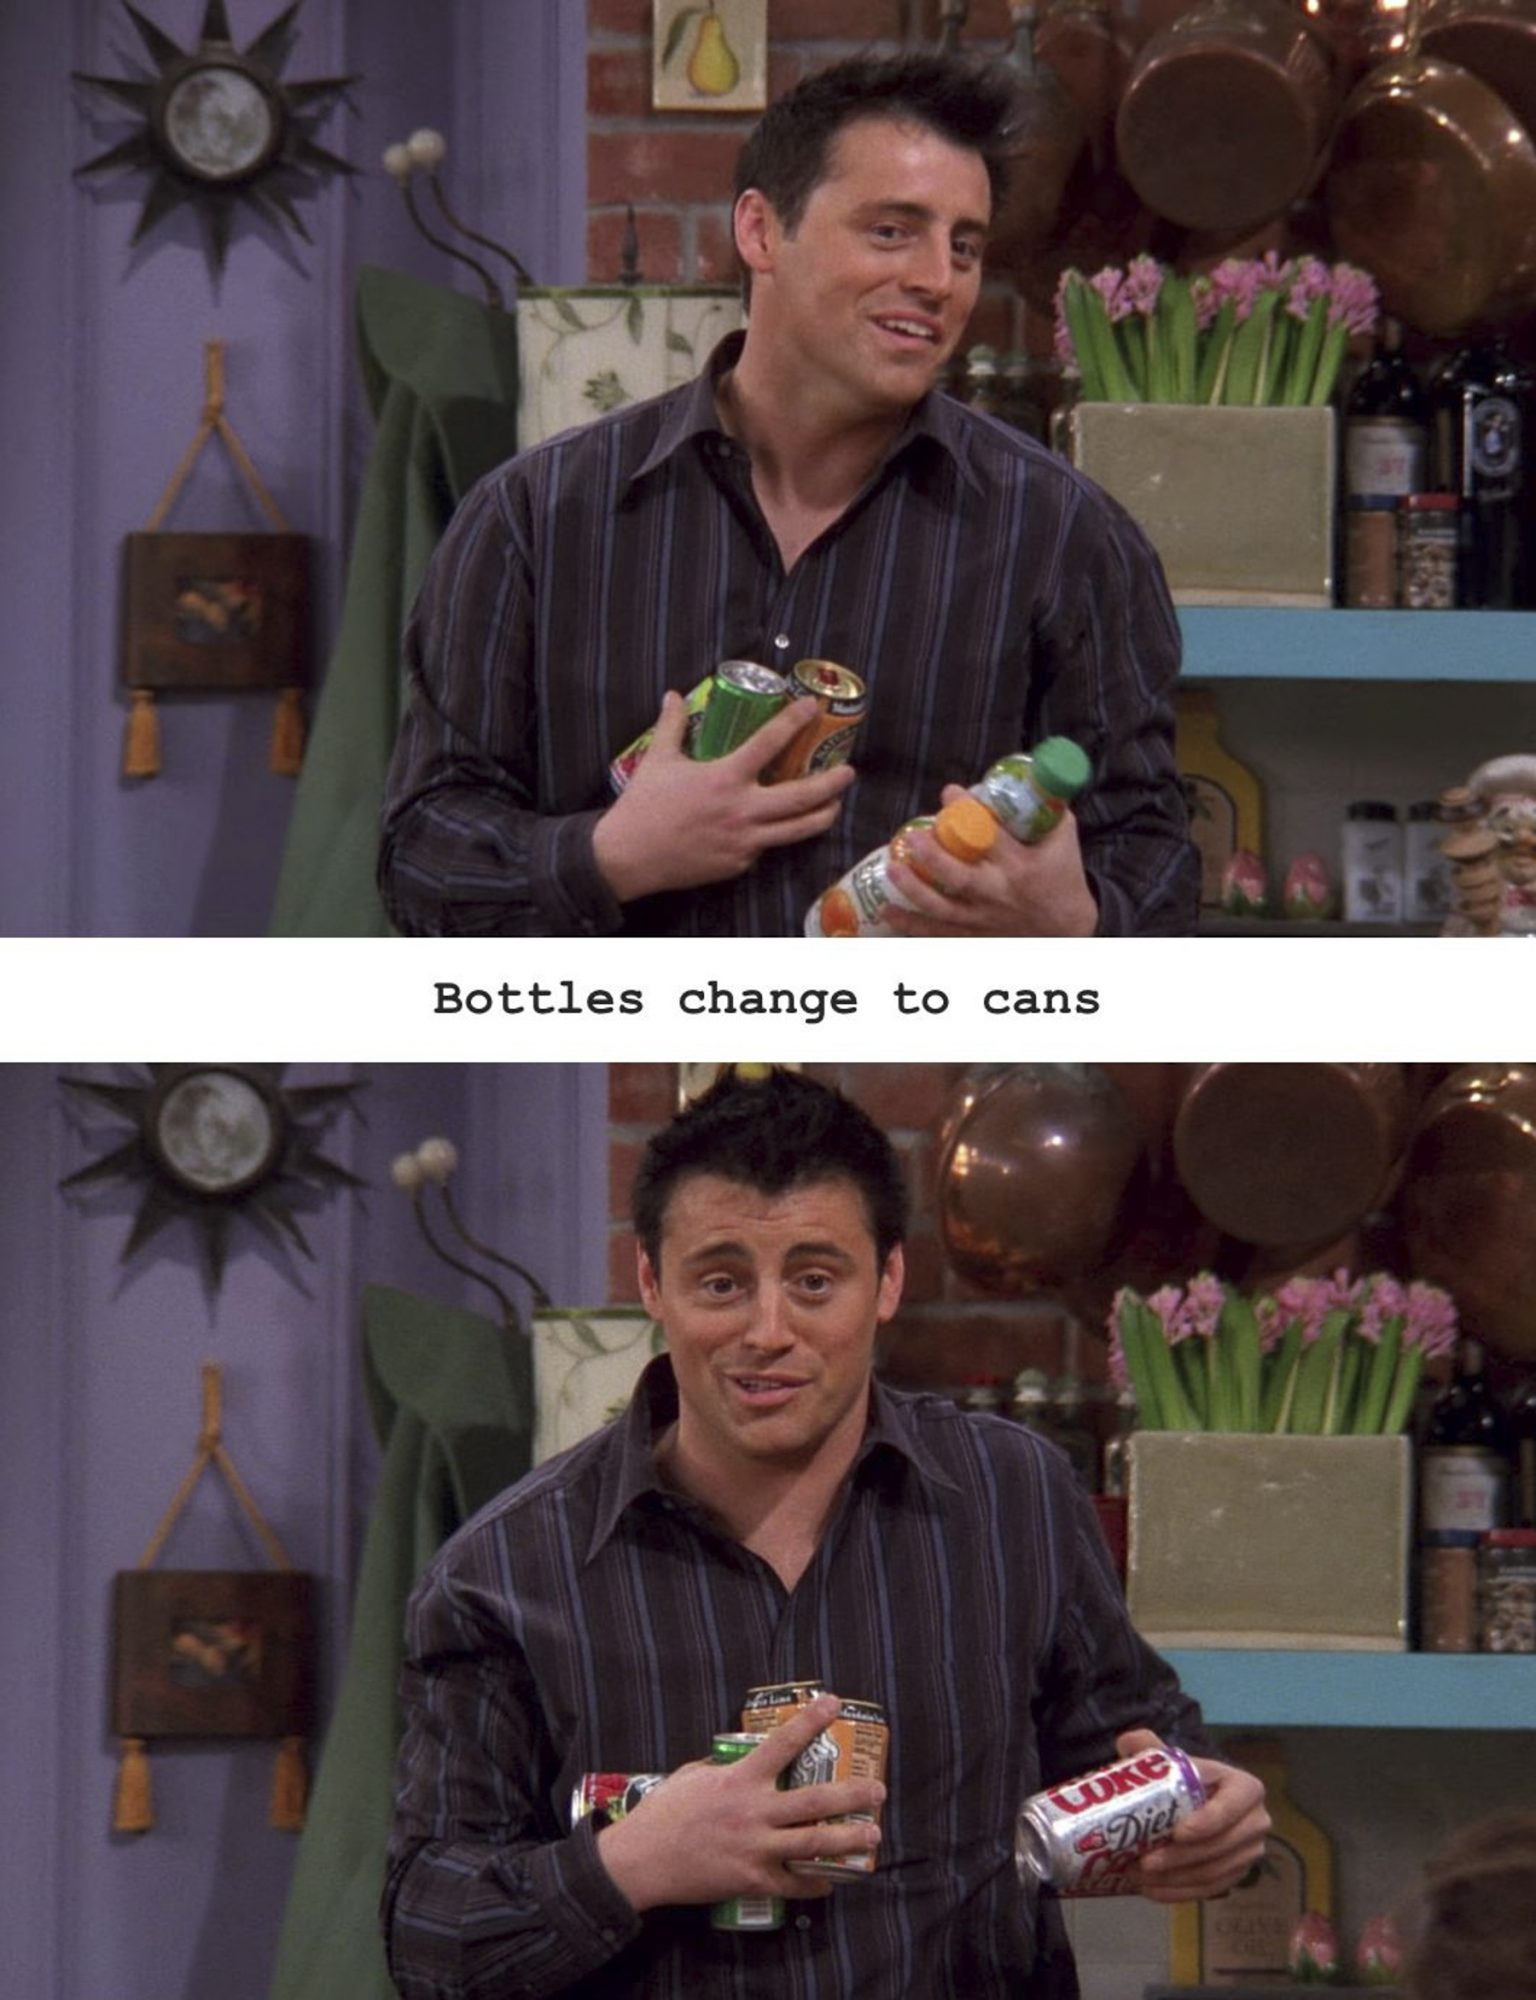 the one with changing cans